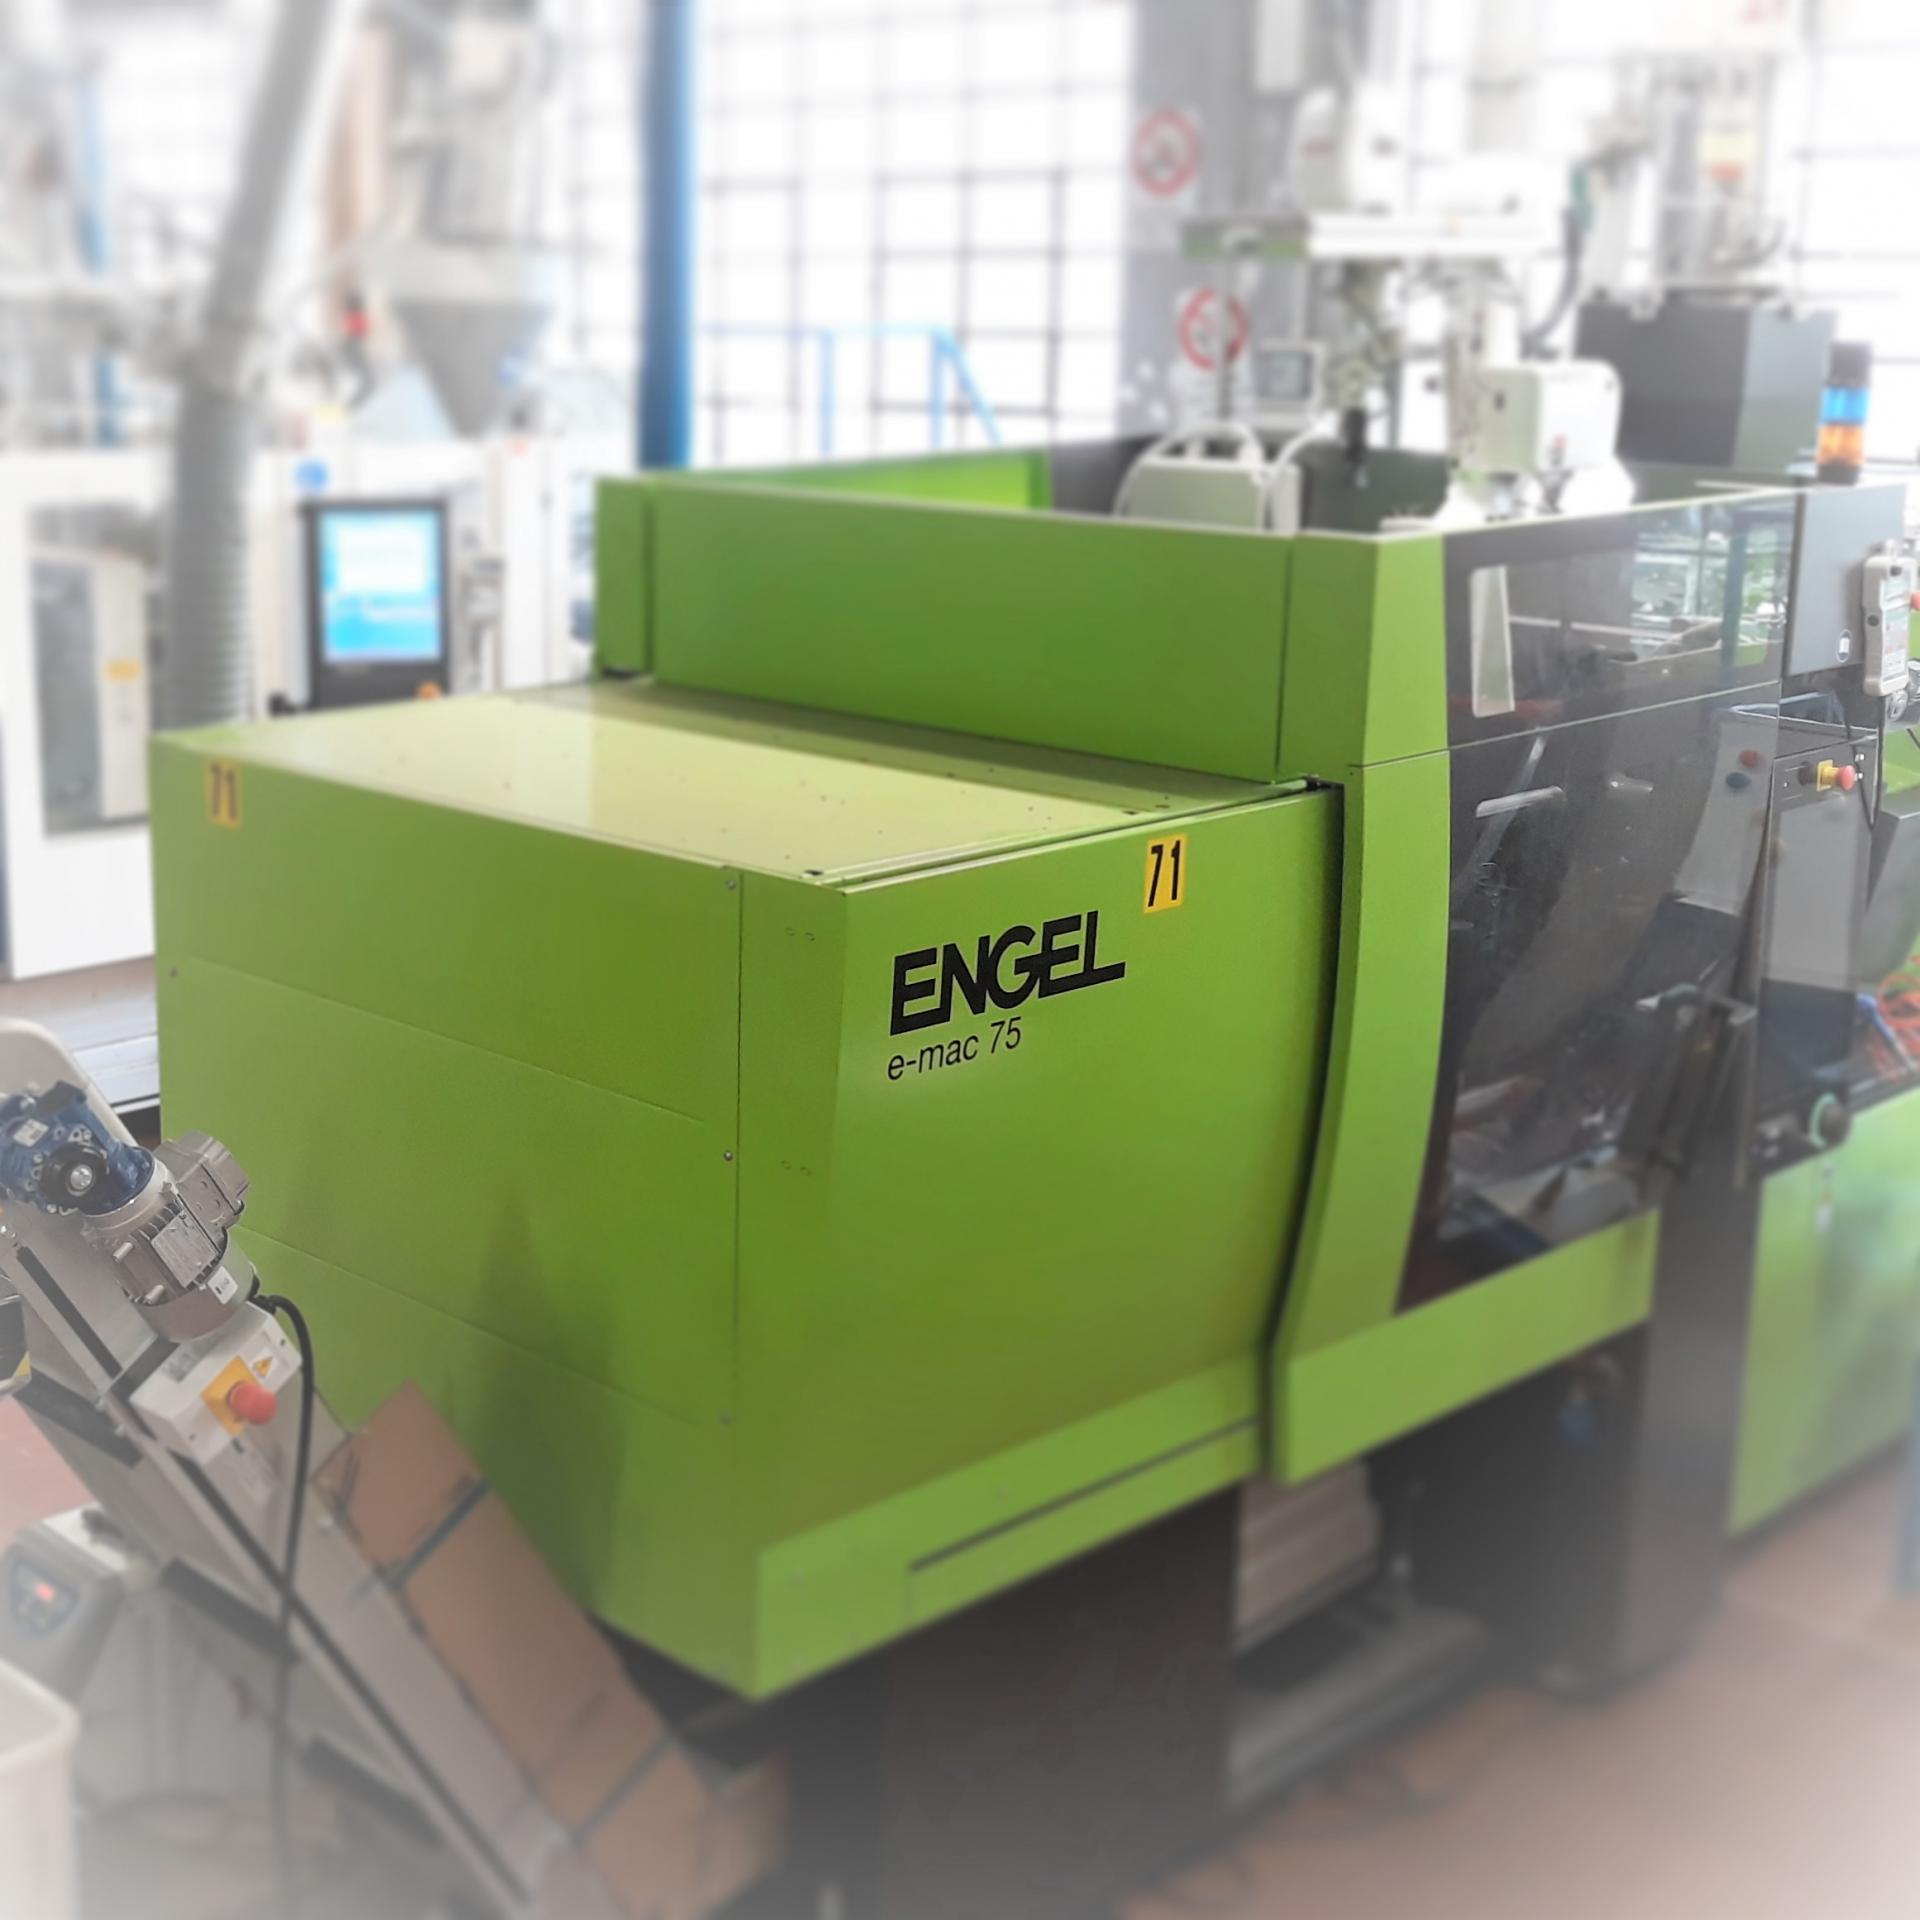 2 injection molding machines Engel